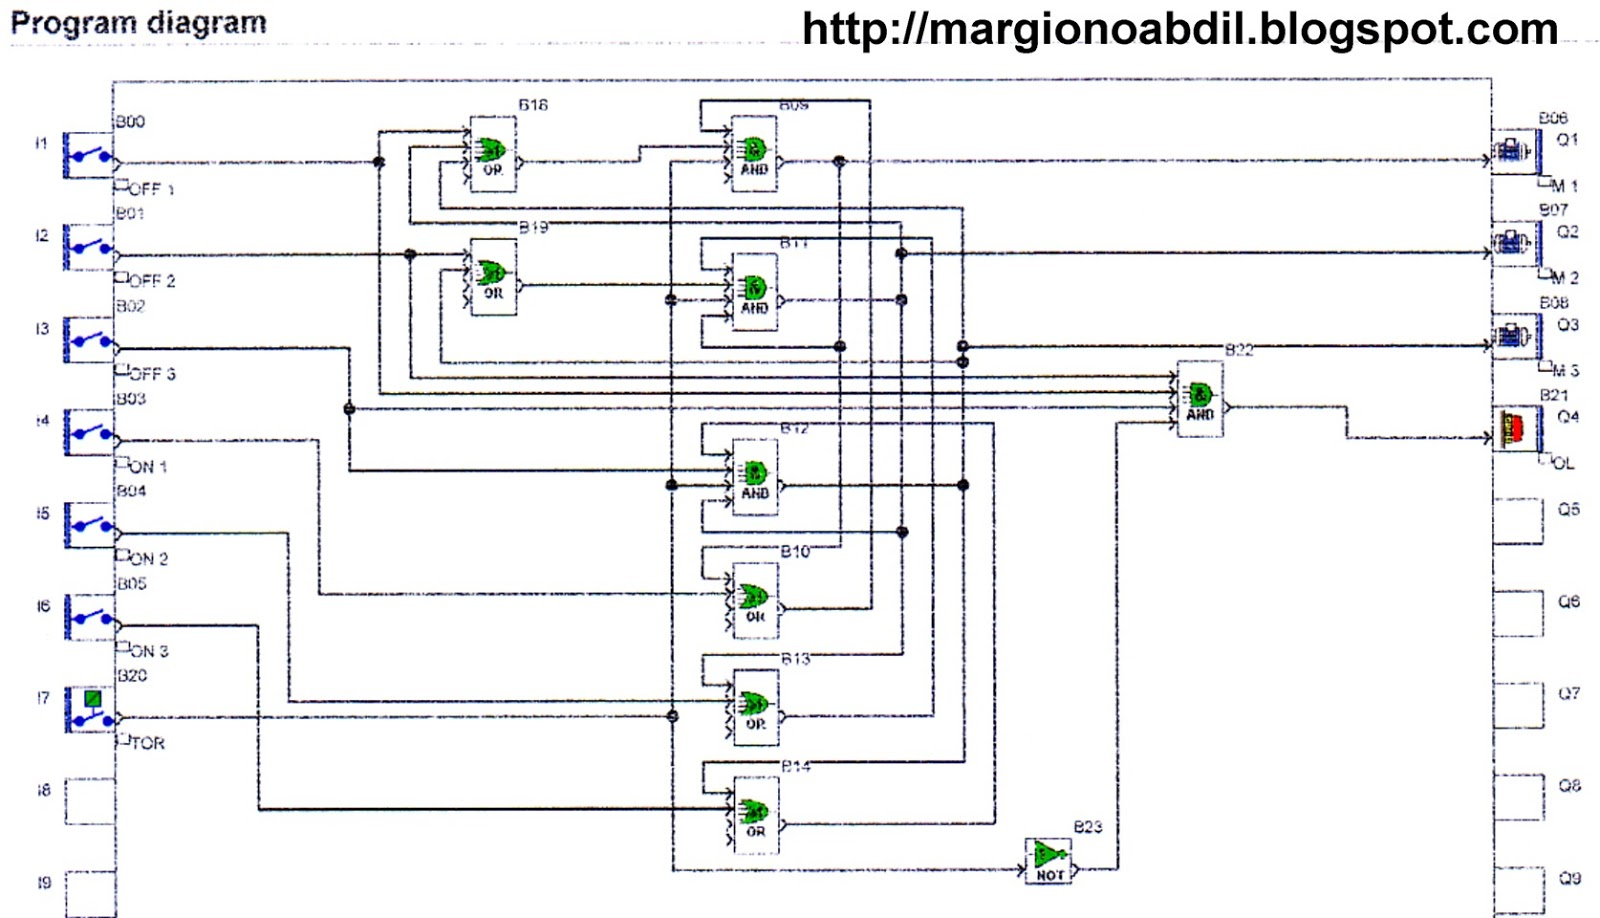 Omron Cjmr J7azbop4 Wiring Diagrams. . Wiring Diagram on